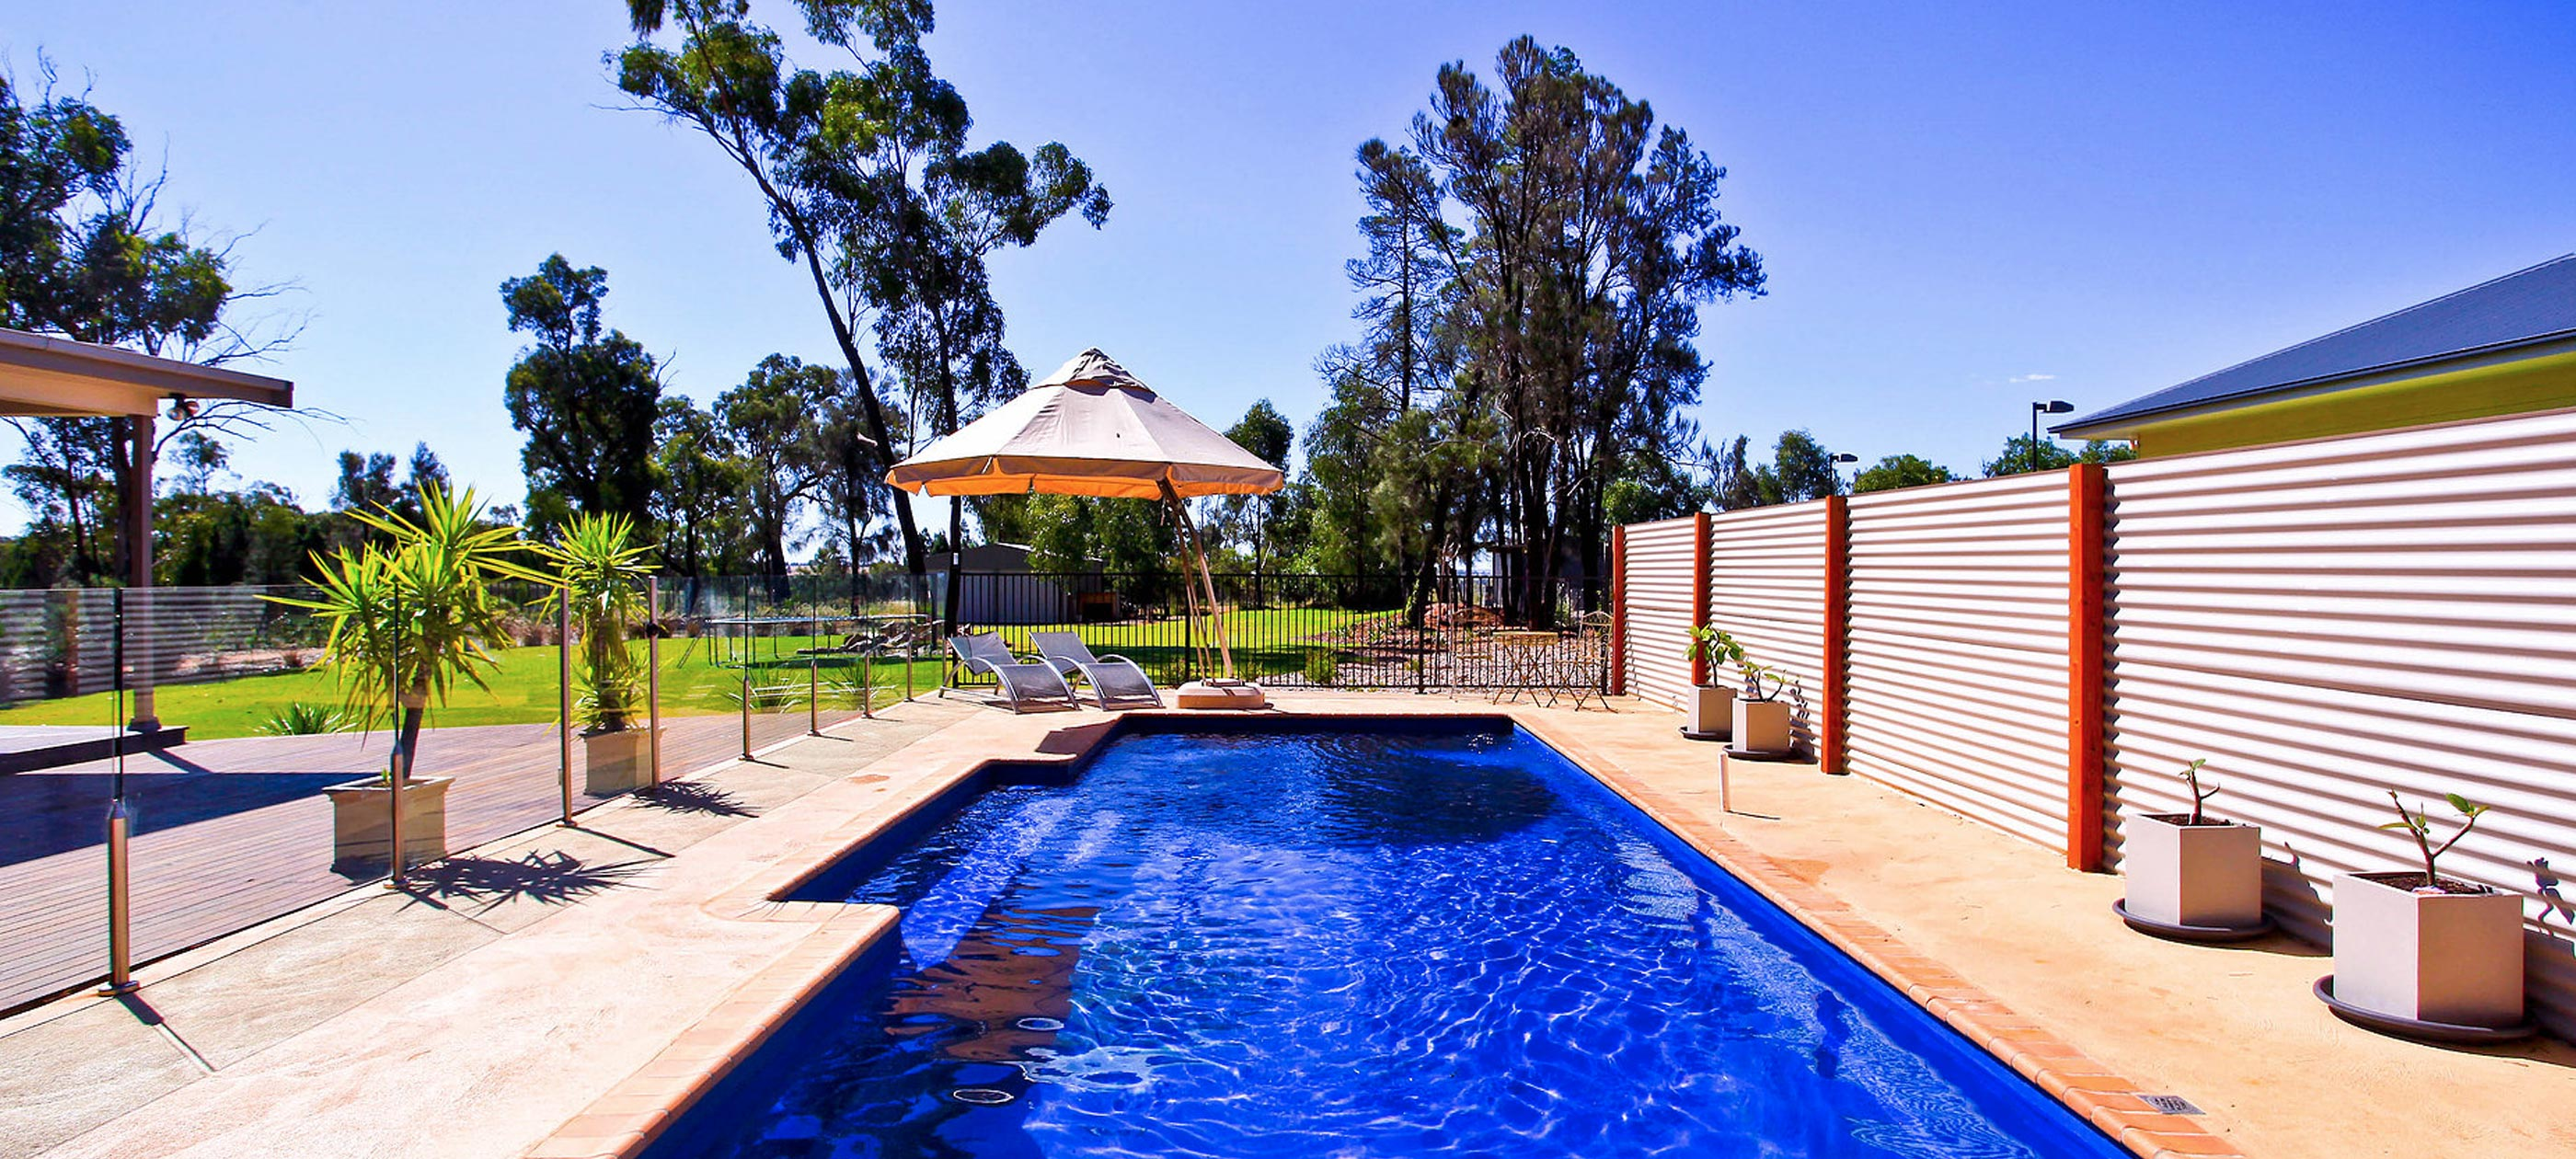 Swimming Pool Builders Melbourne - Coral Pools